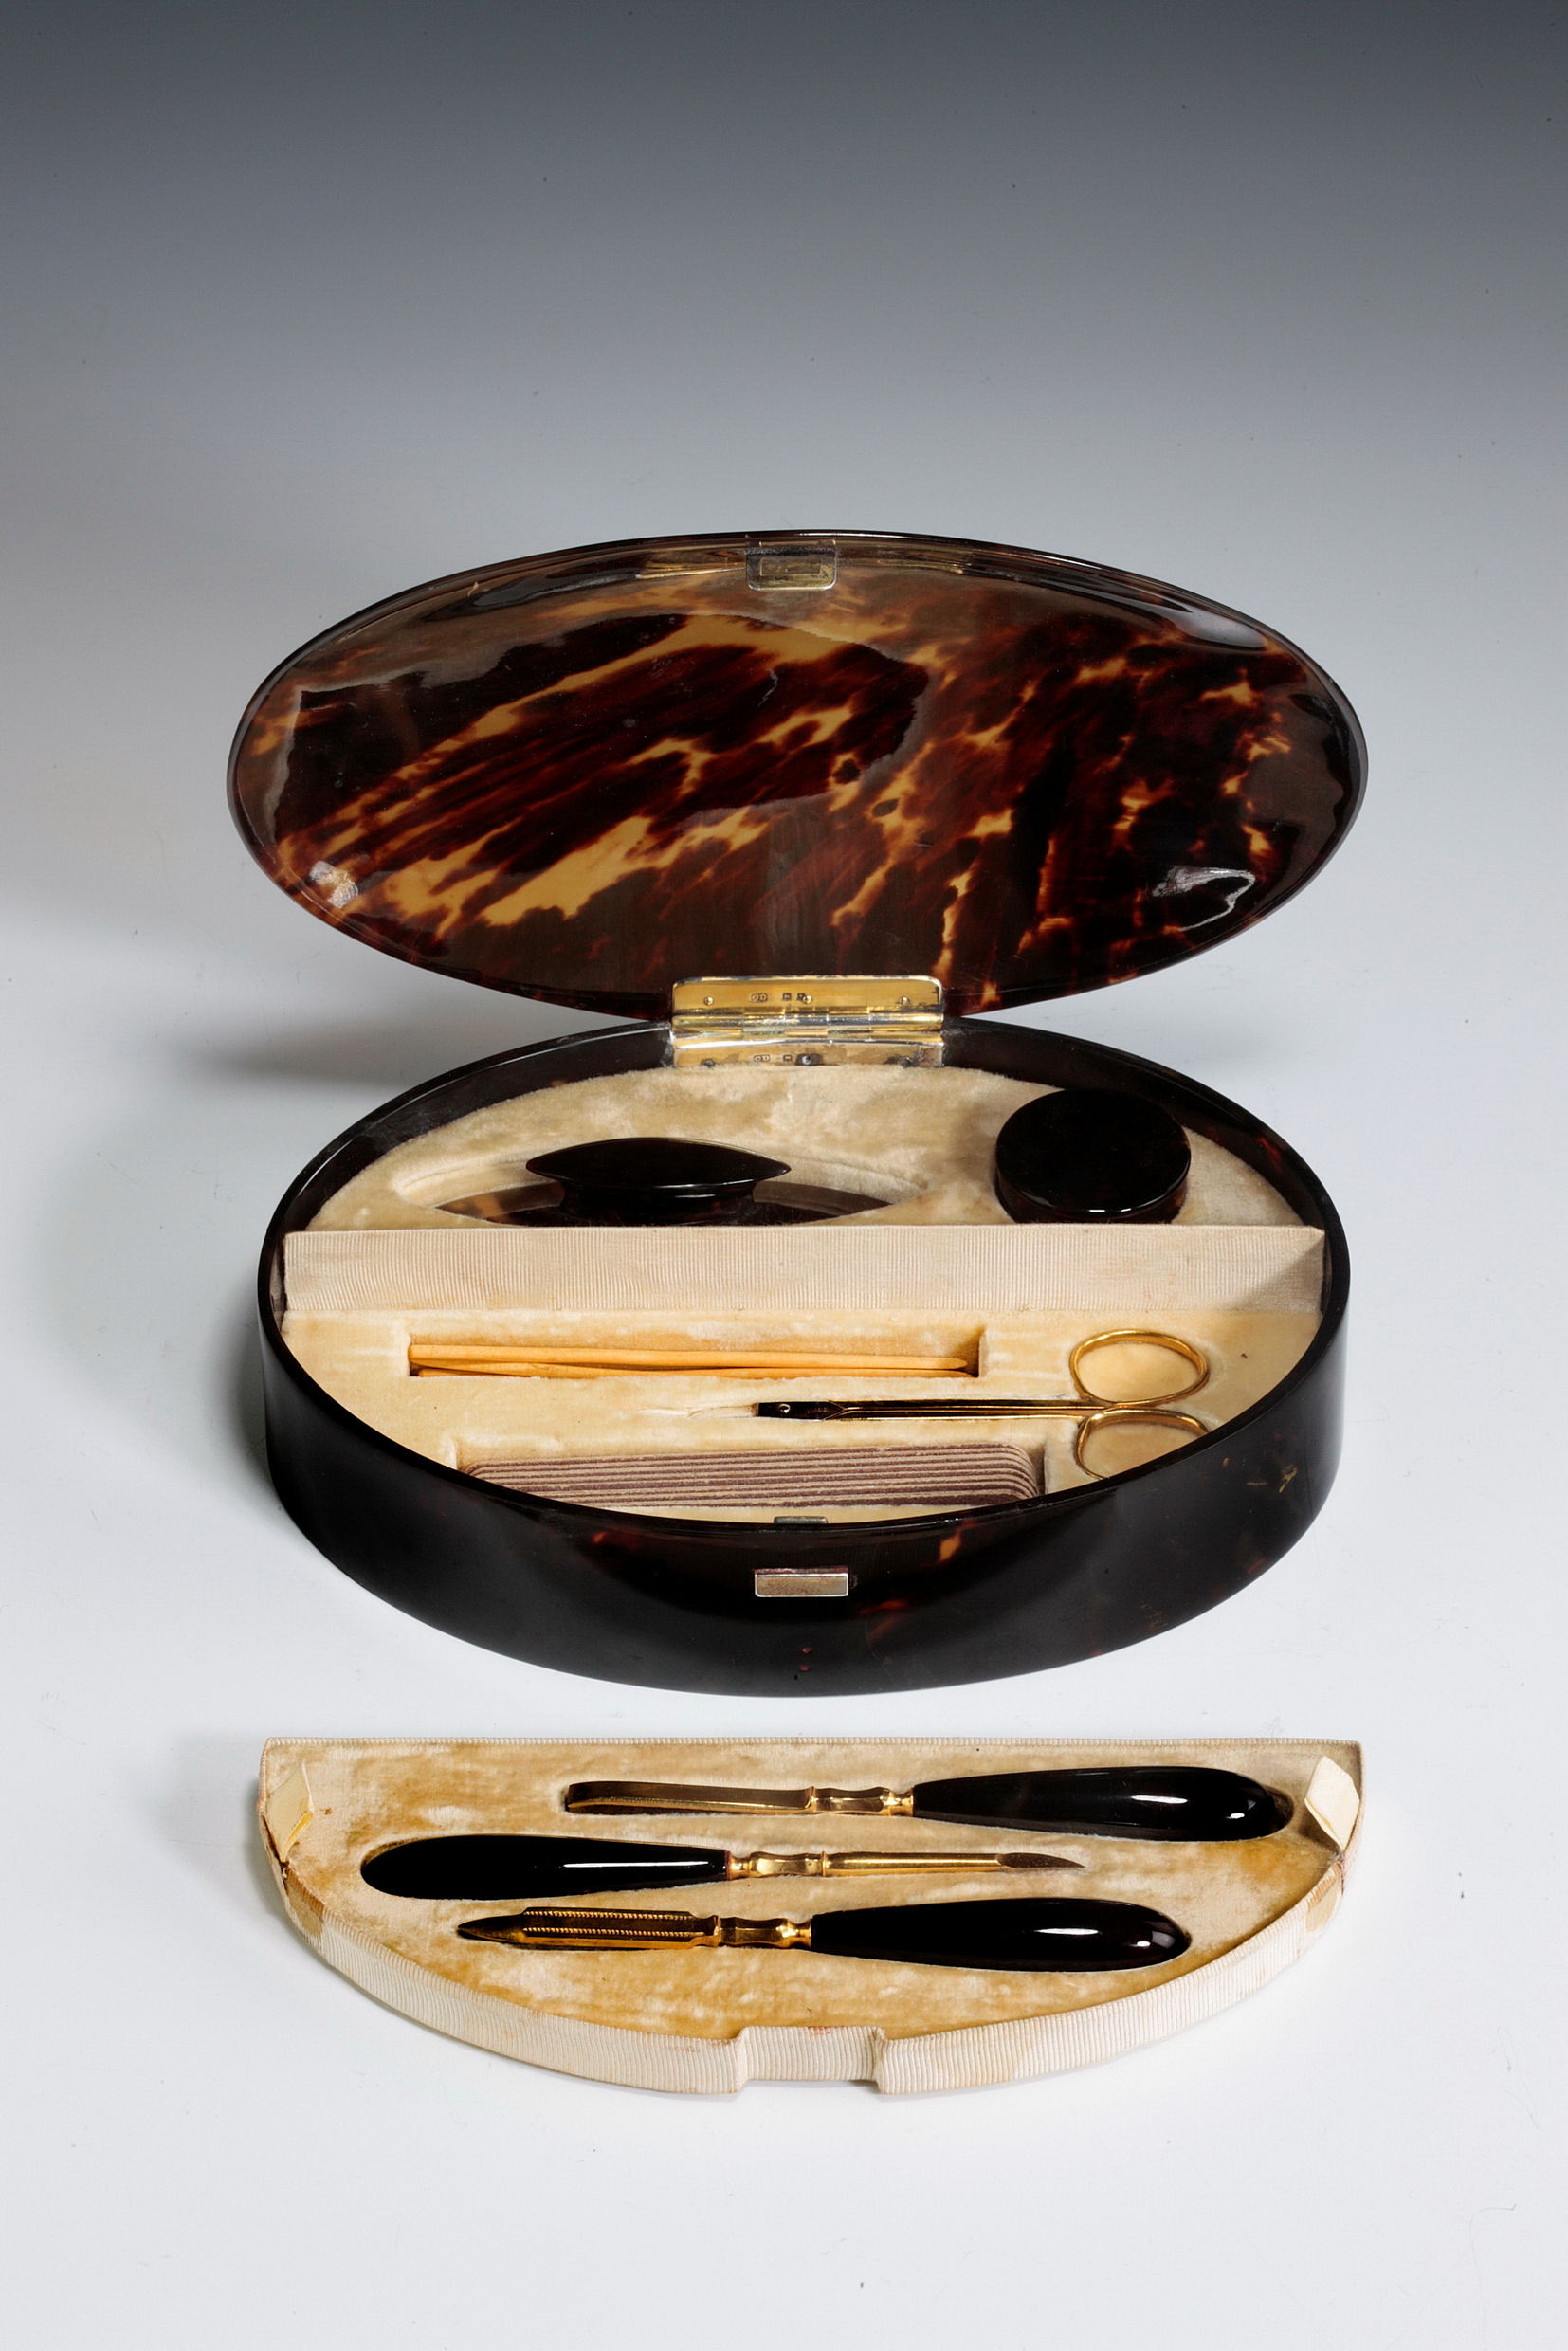 tortoise shell glass vase of antique tortoiseshell boxed manicure set regarding antique tortoiseshell box manicure tools 4462 1 4462